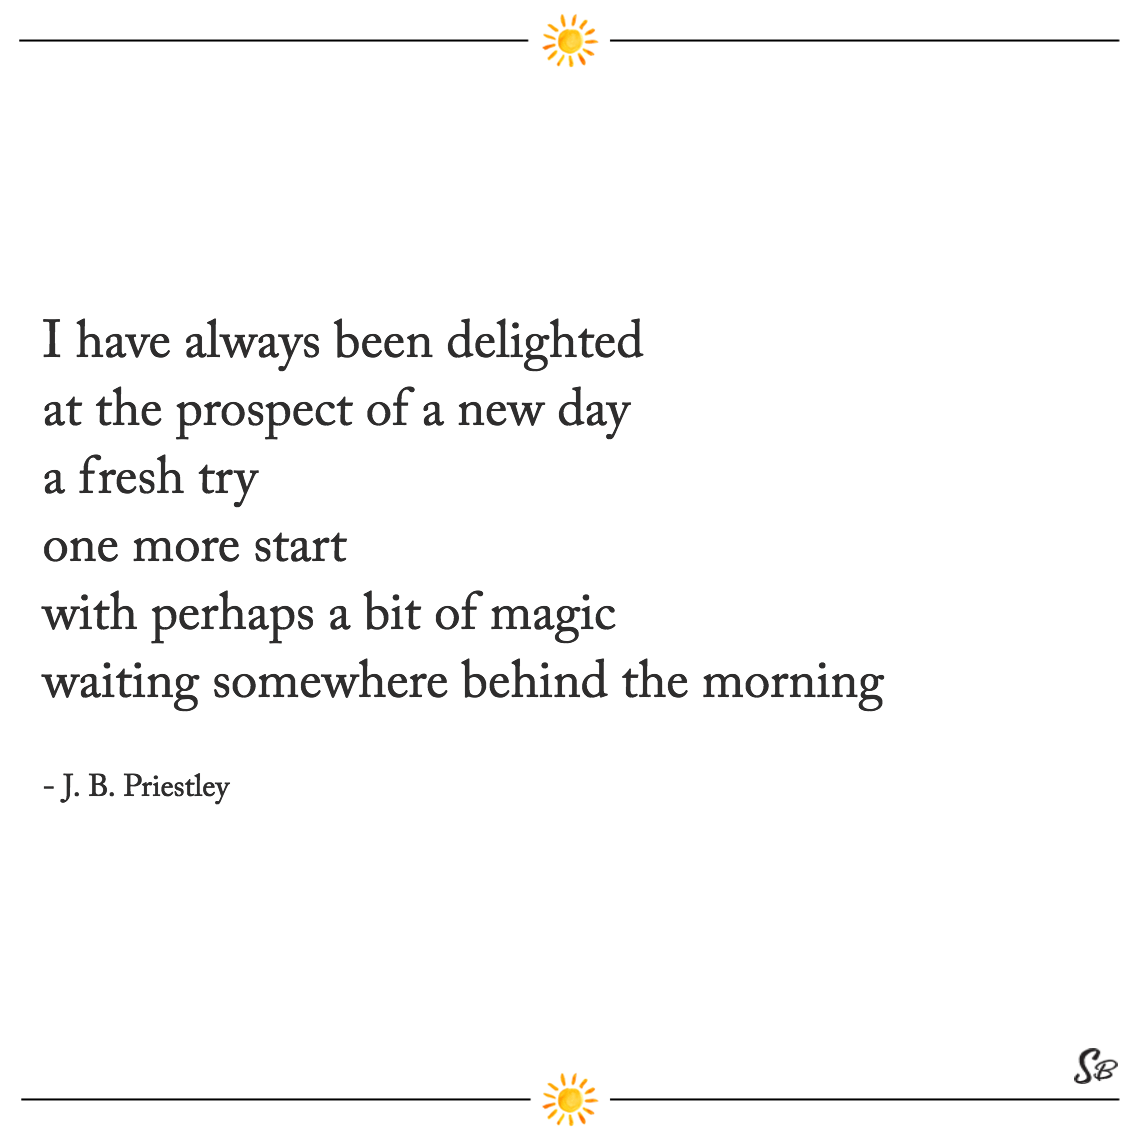 I have always been delighted at the prospect of a new day a fresh try one more start with perhaps a bit of magic waiting somewhere behind the morning jb priestley